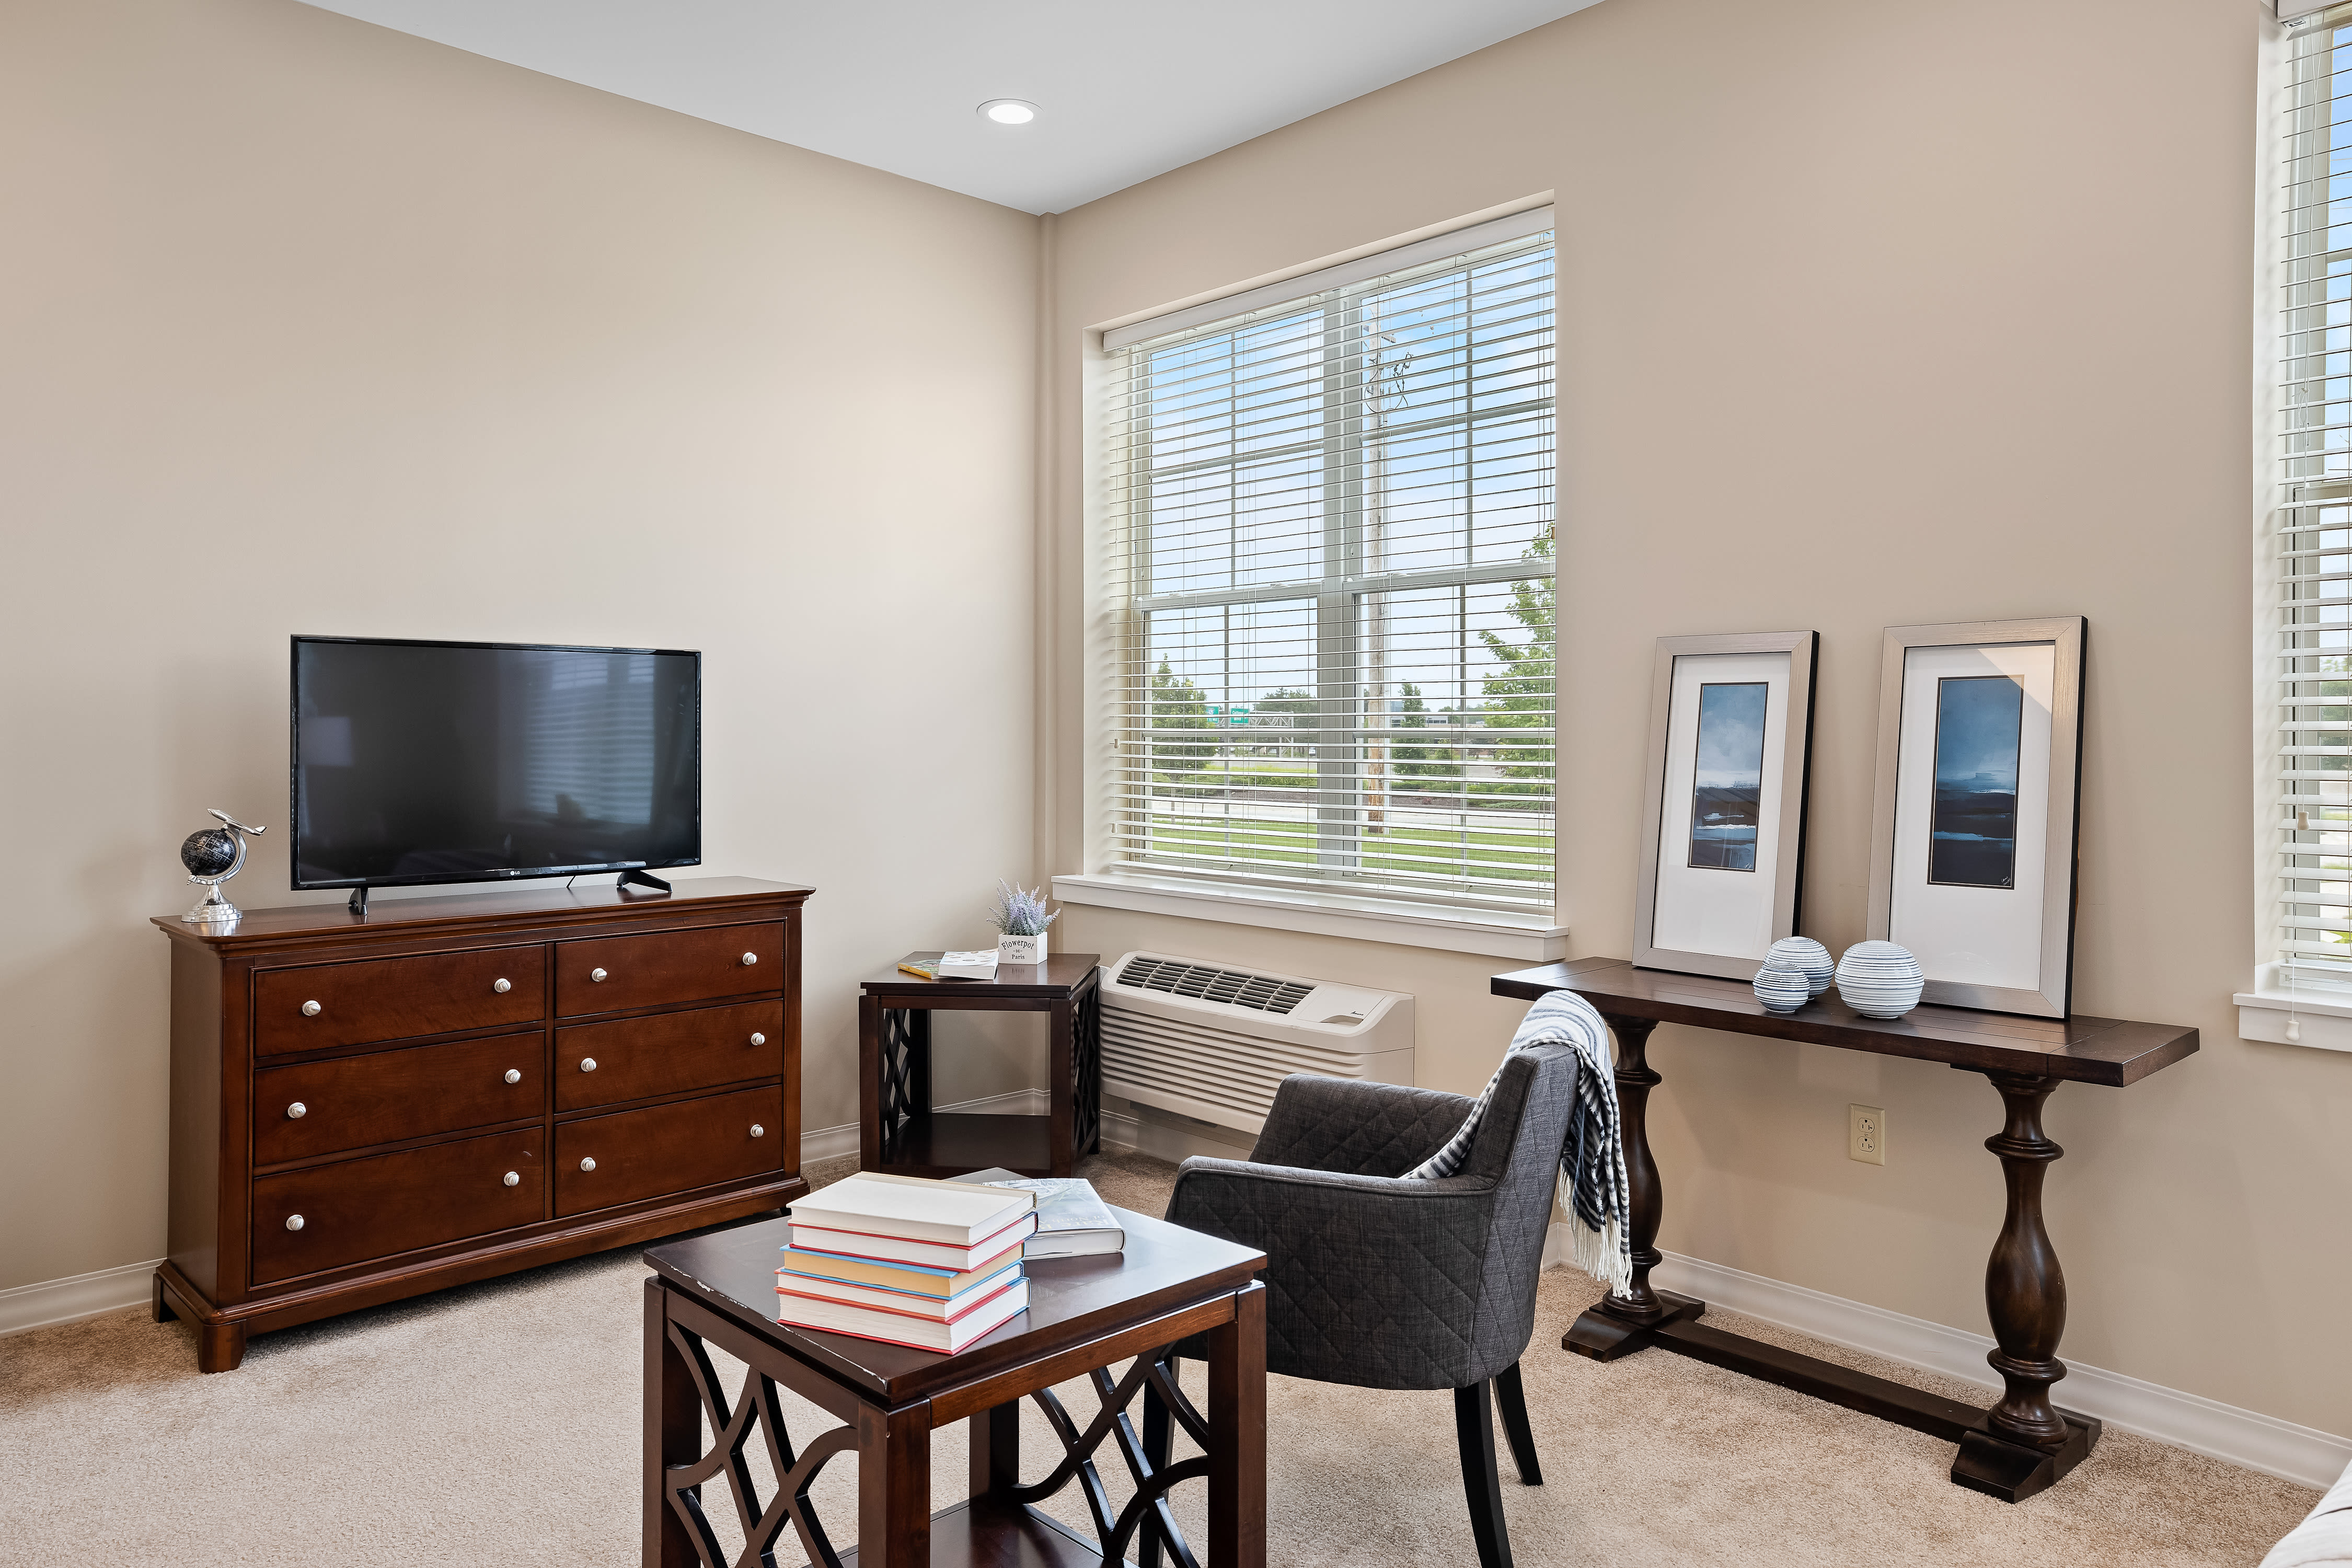 A large resident apartment at Anthology of Overland Park in Overland Park, Kansas.